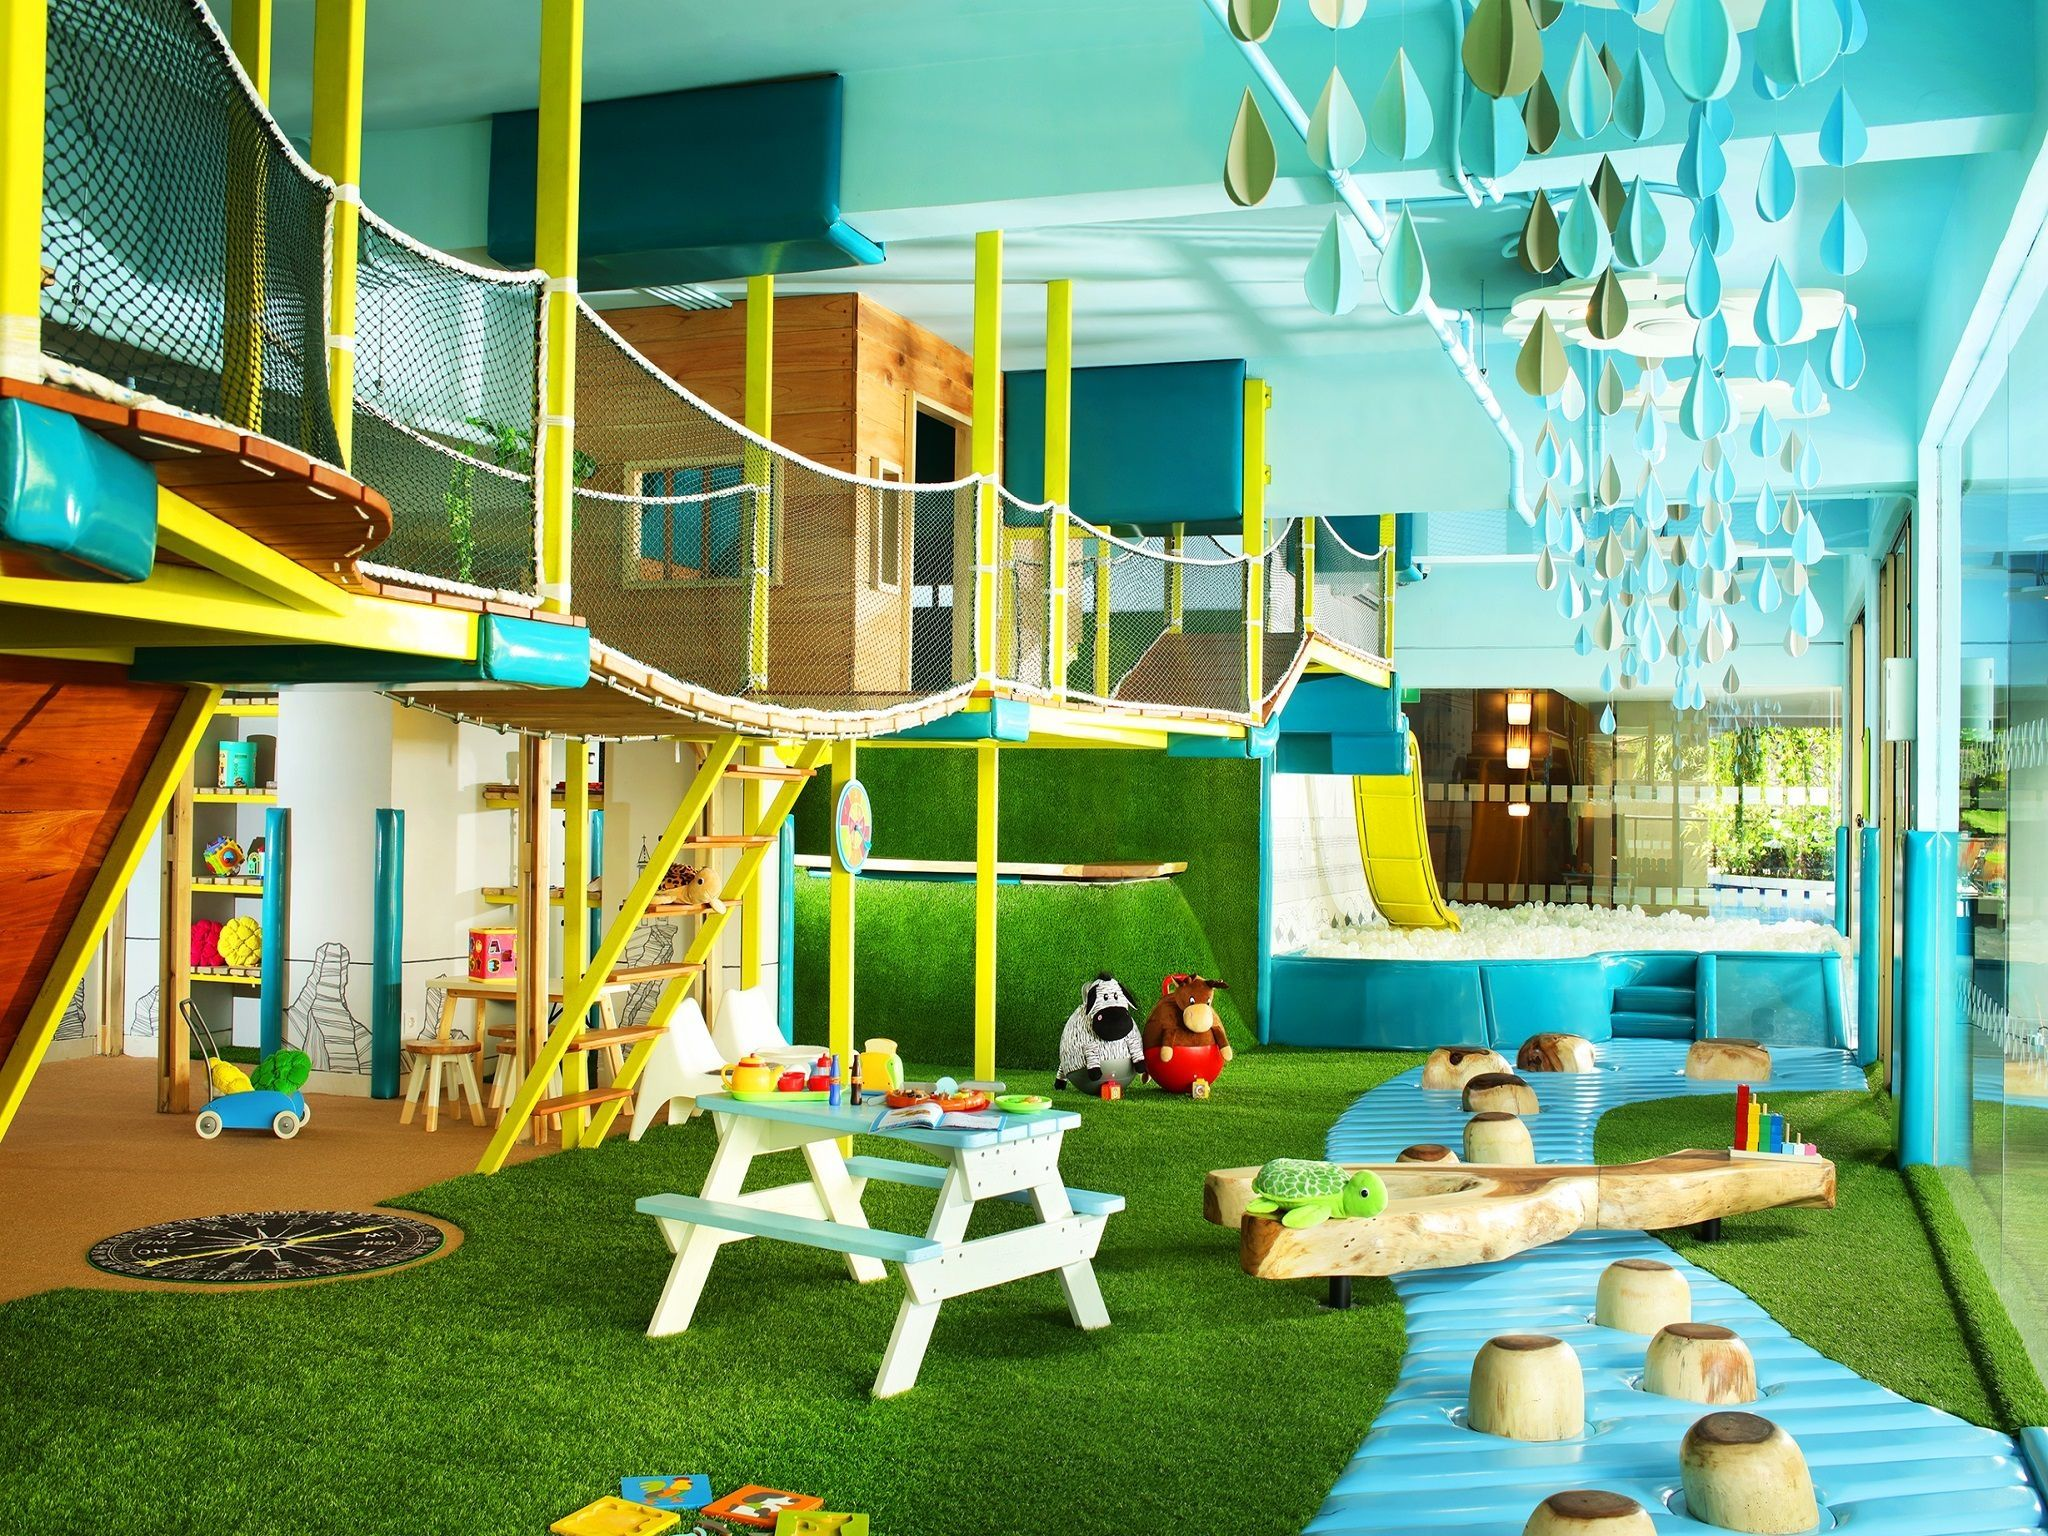 Kids Club - Four Points by Sheraton Bali, Kuta